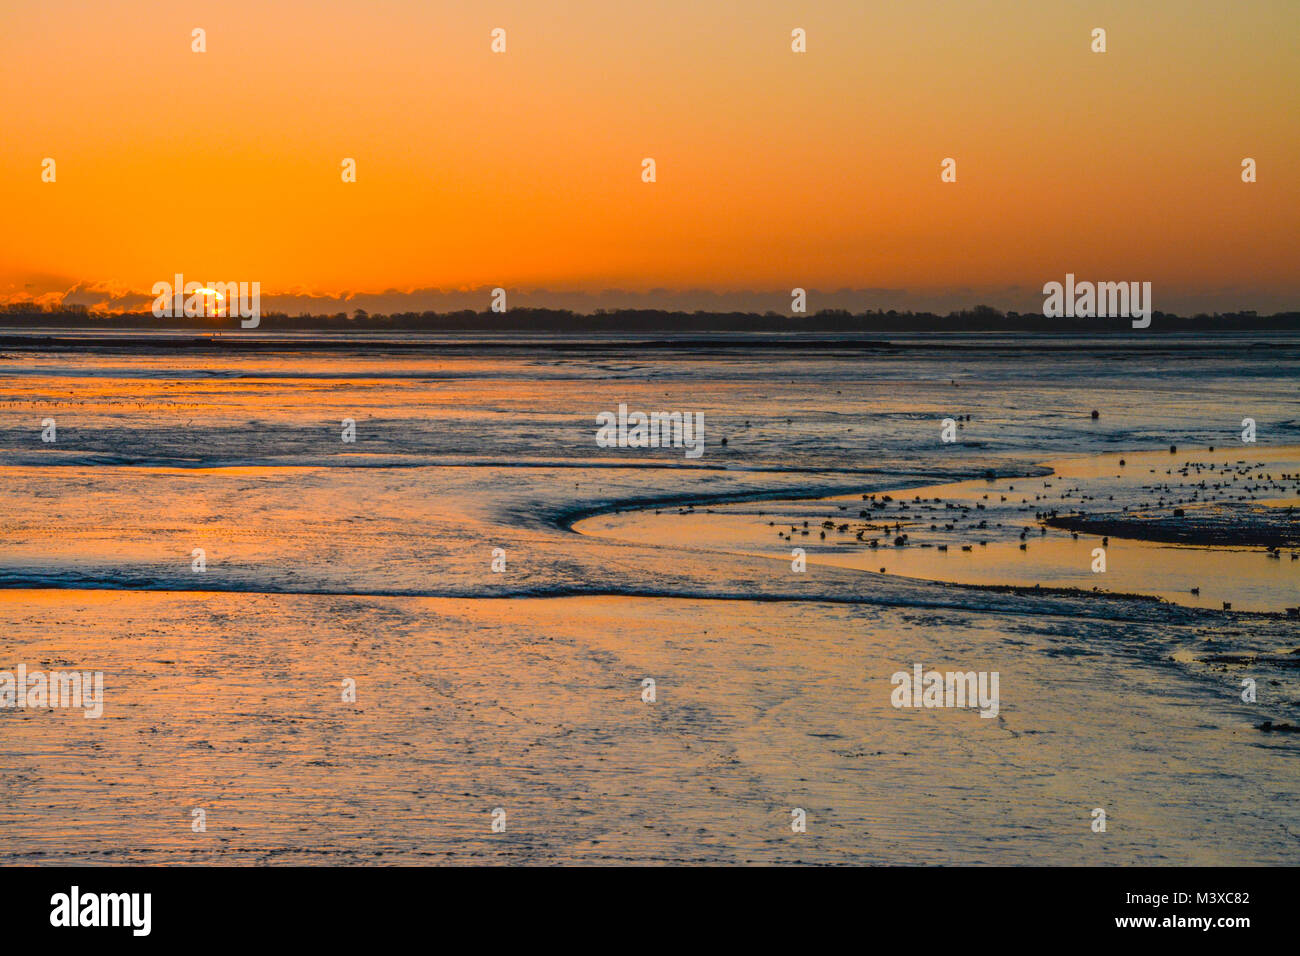 winter-sunrise-over-coastal-mudflats-at-farlington-marshes-nature-M3XC82.jpg